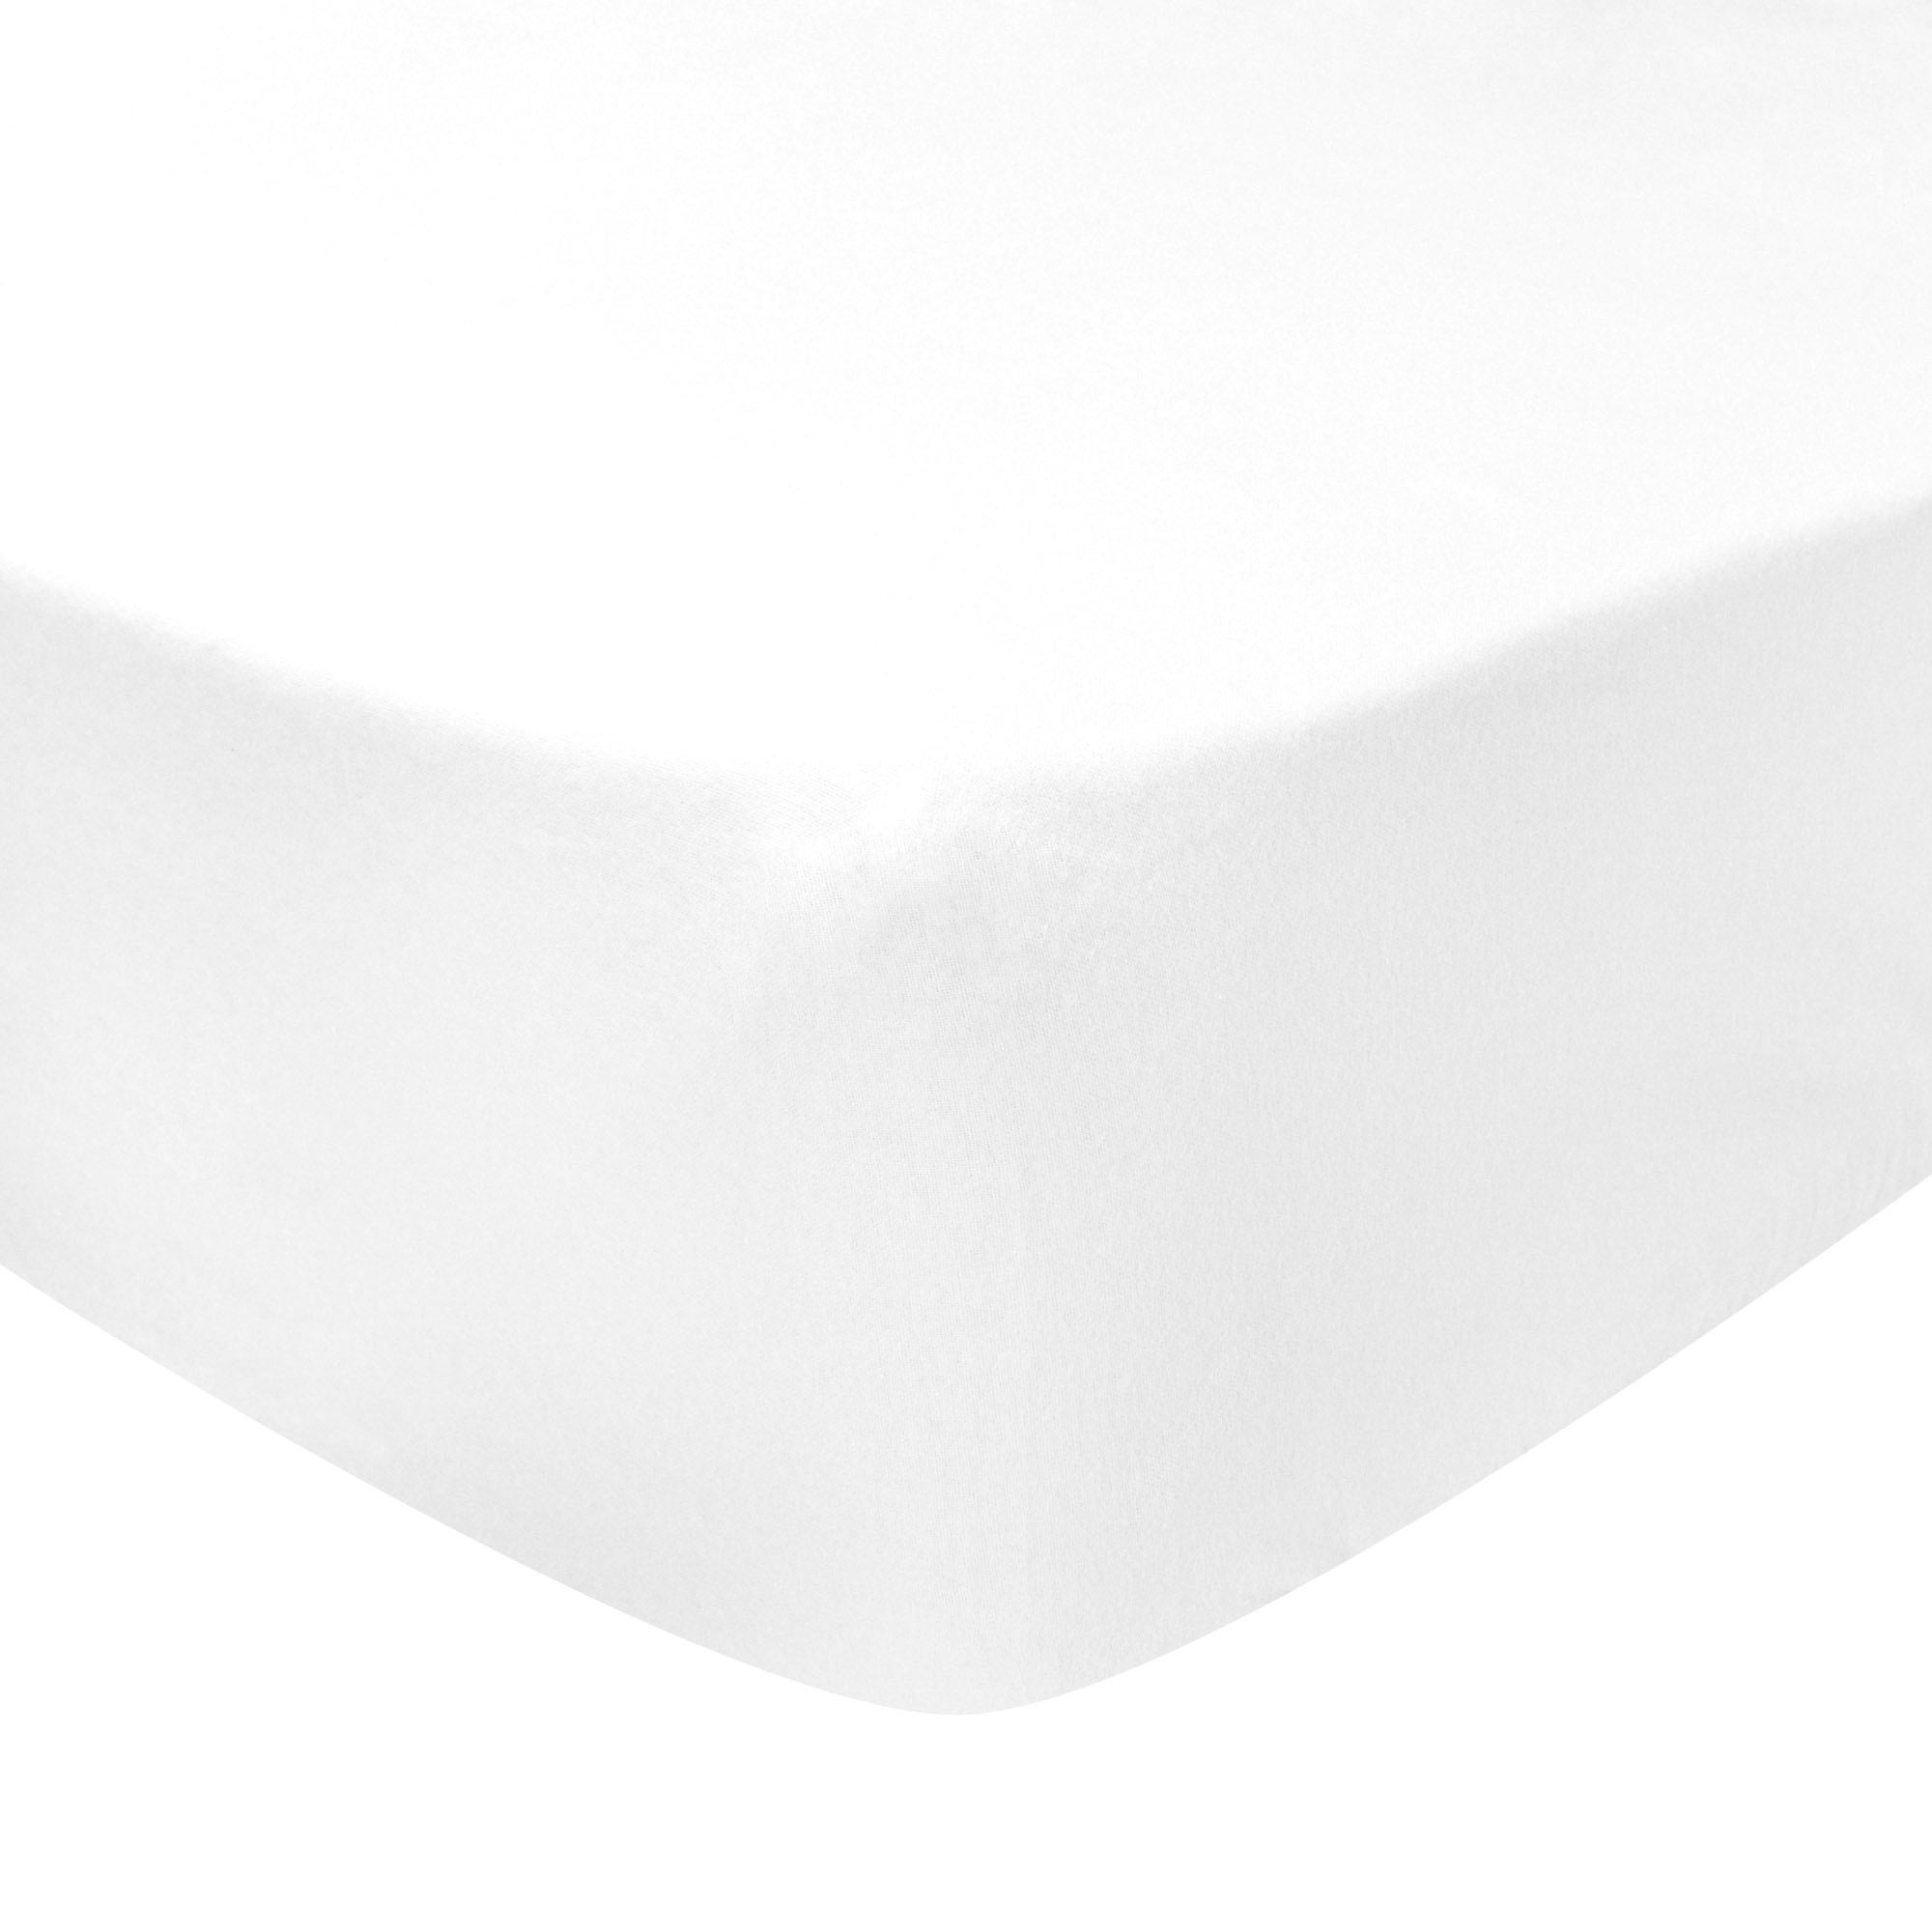 Photo of Luxury brushed cotton standard 28cm fitted sheet white